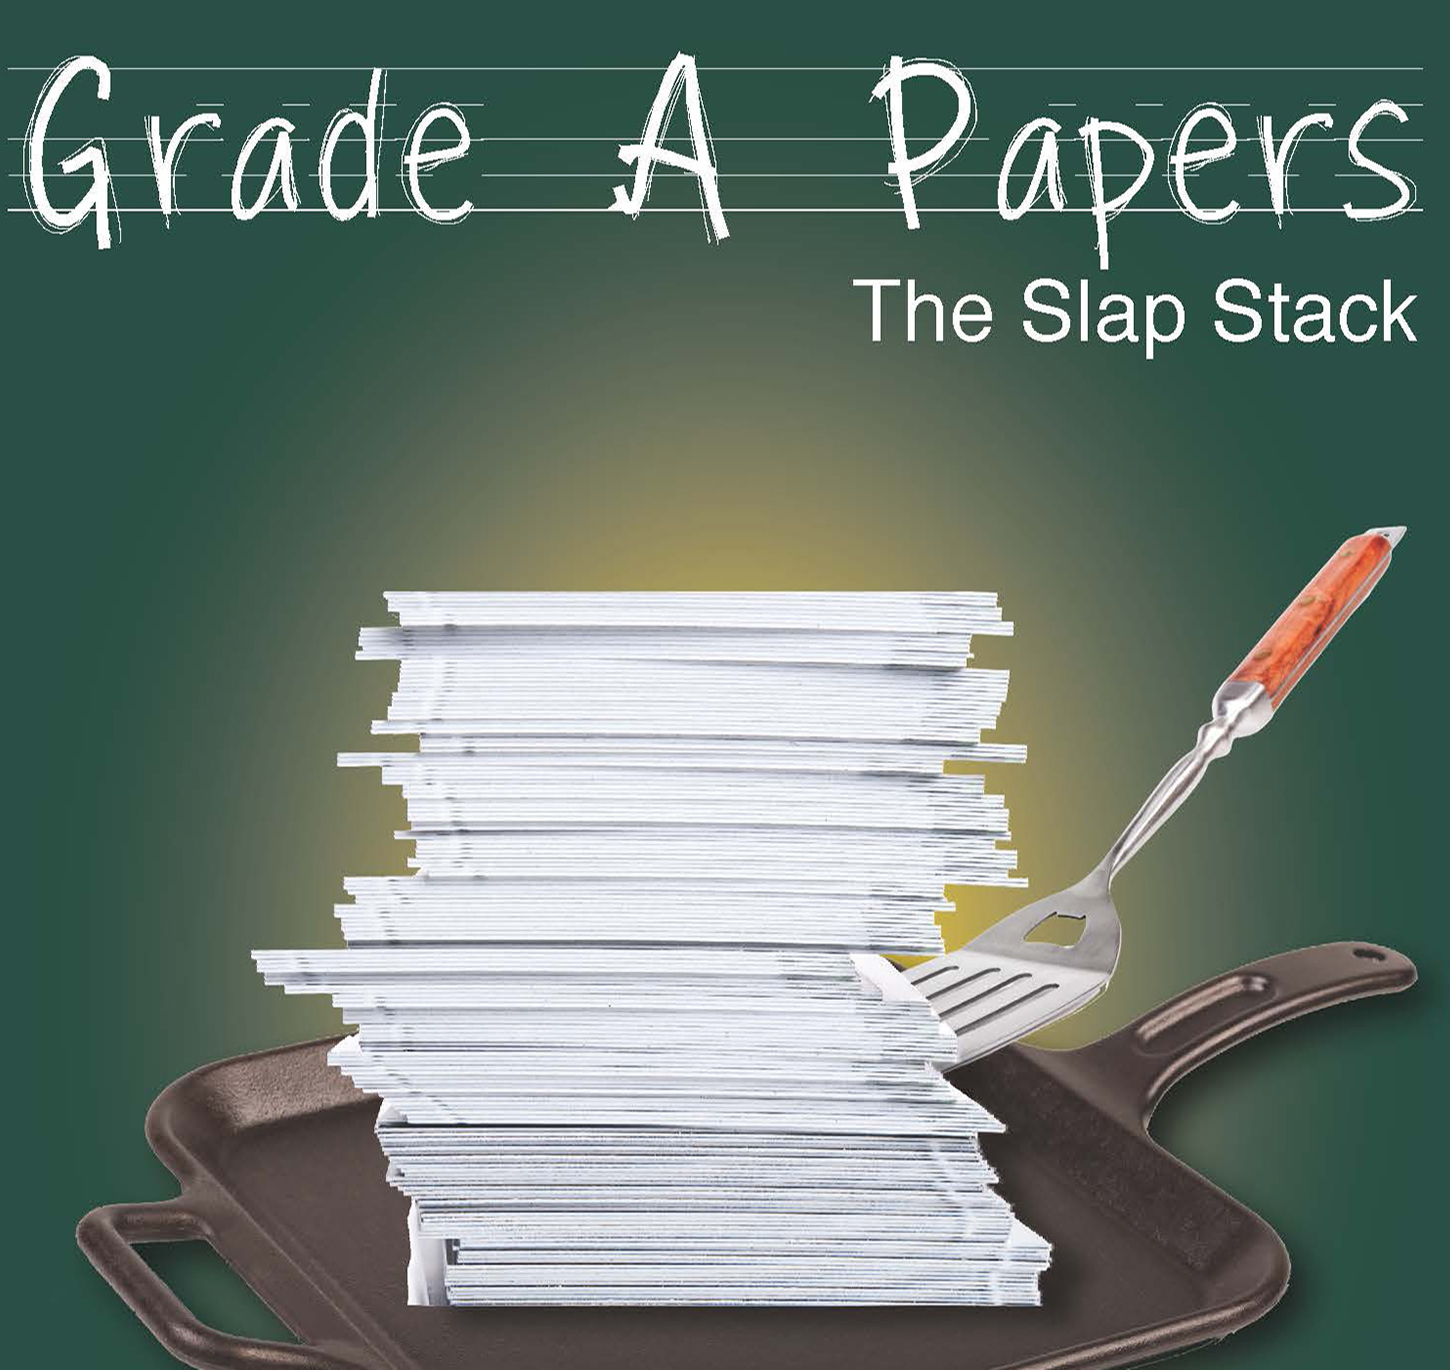 grade a papers: a funny coffee table book for english teachers and